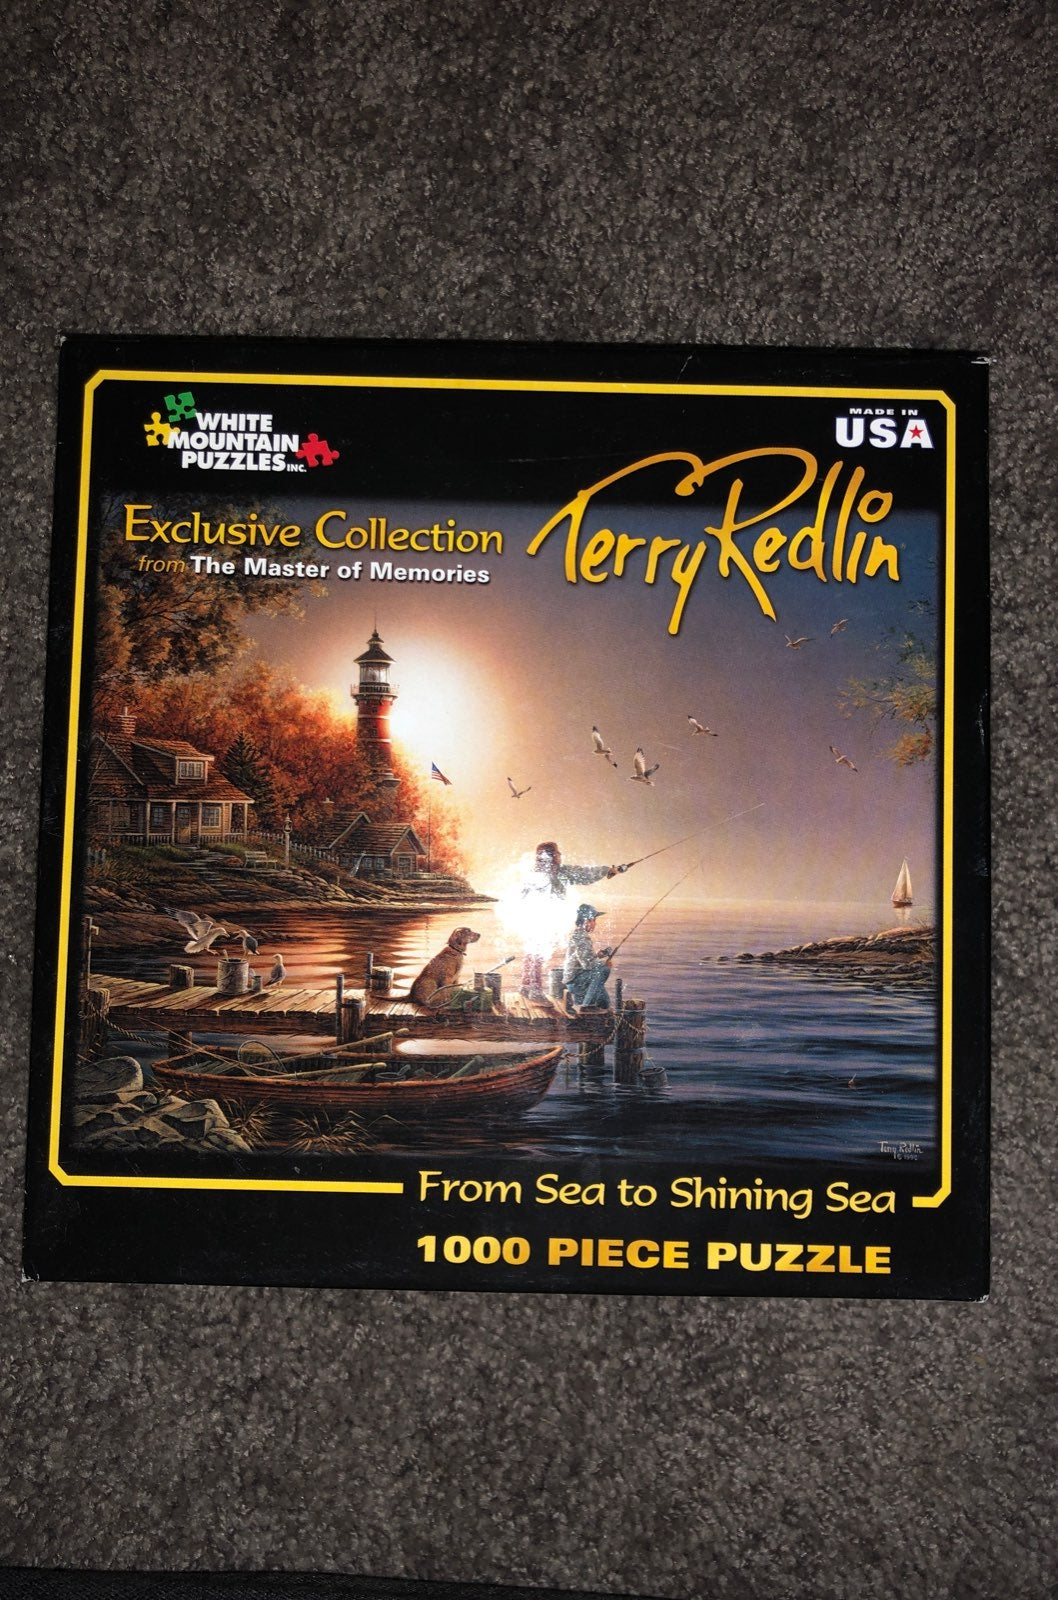 Terry Redlin puzzle From Sea to Shining